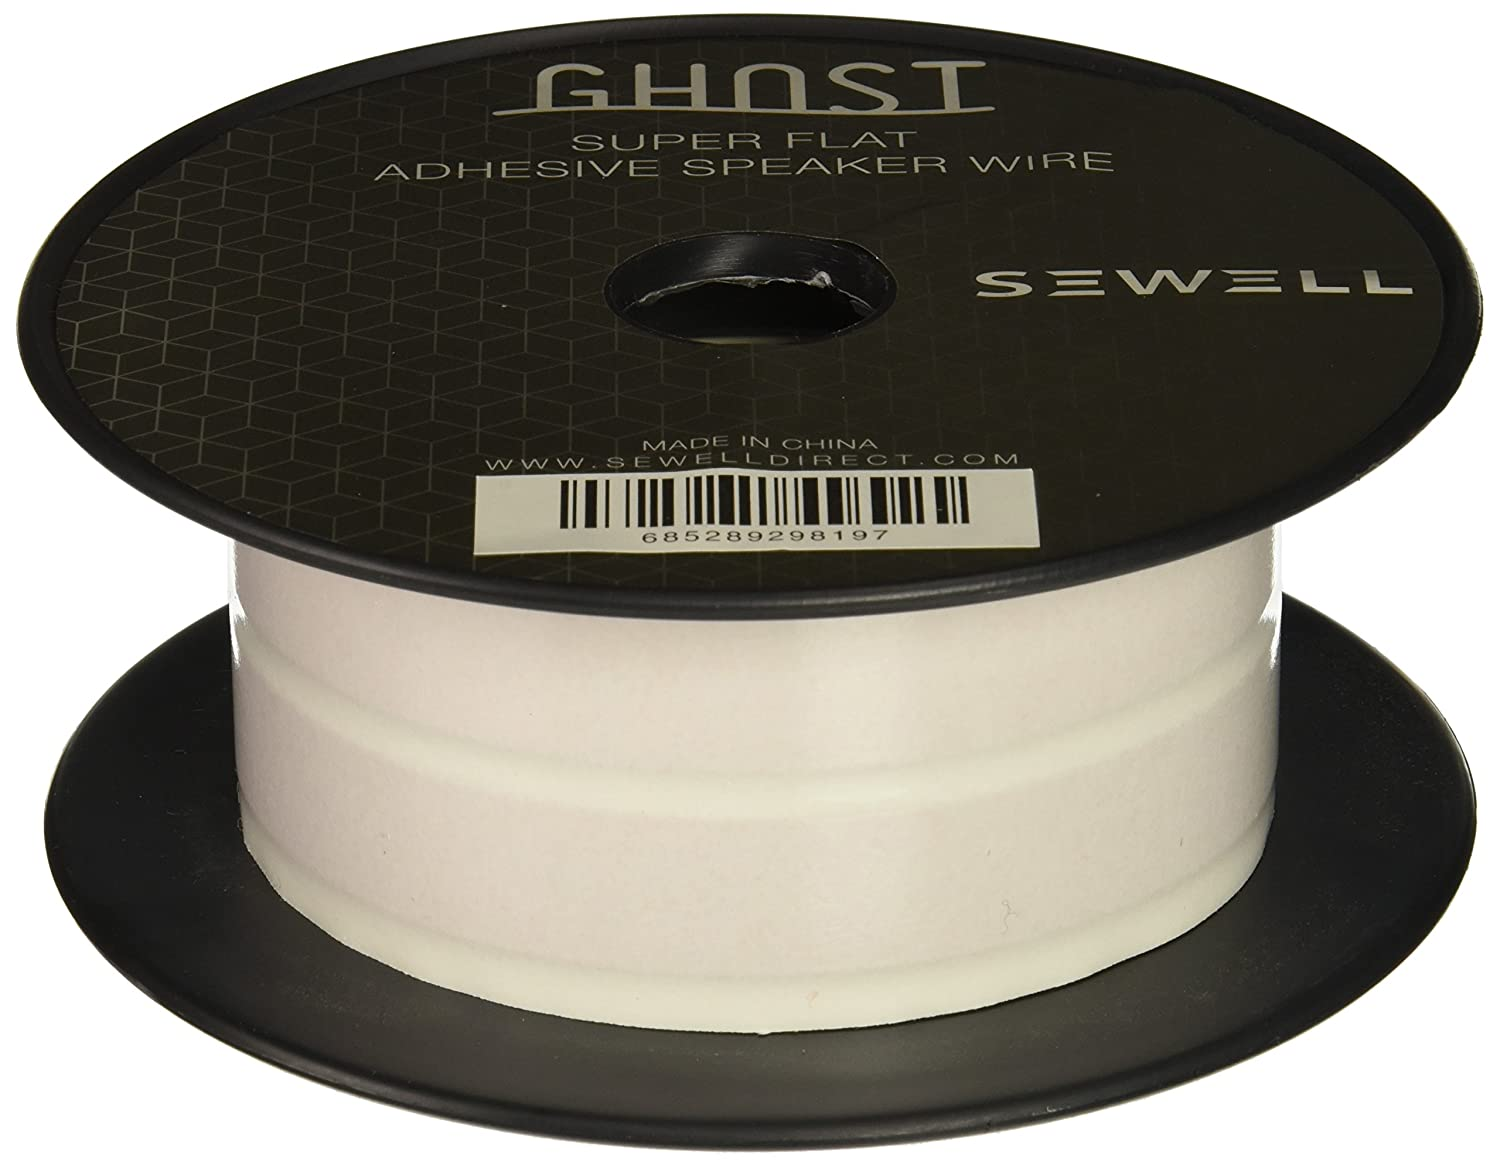 Sewell Ghost Wire Super Flat Adhesive Speaker 16 Wiring Outdoor Speakers To Stereo Awg 2 Conductor 50 Ft Spool White Home Audio Theater